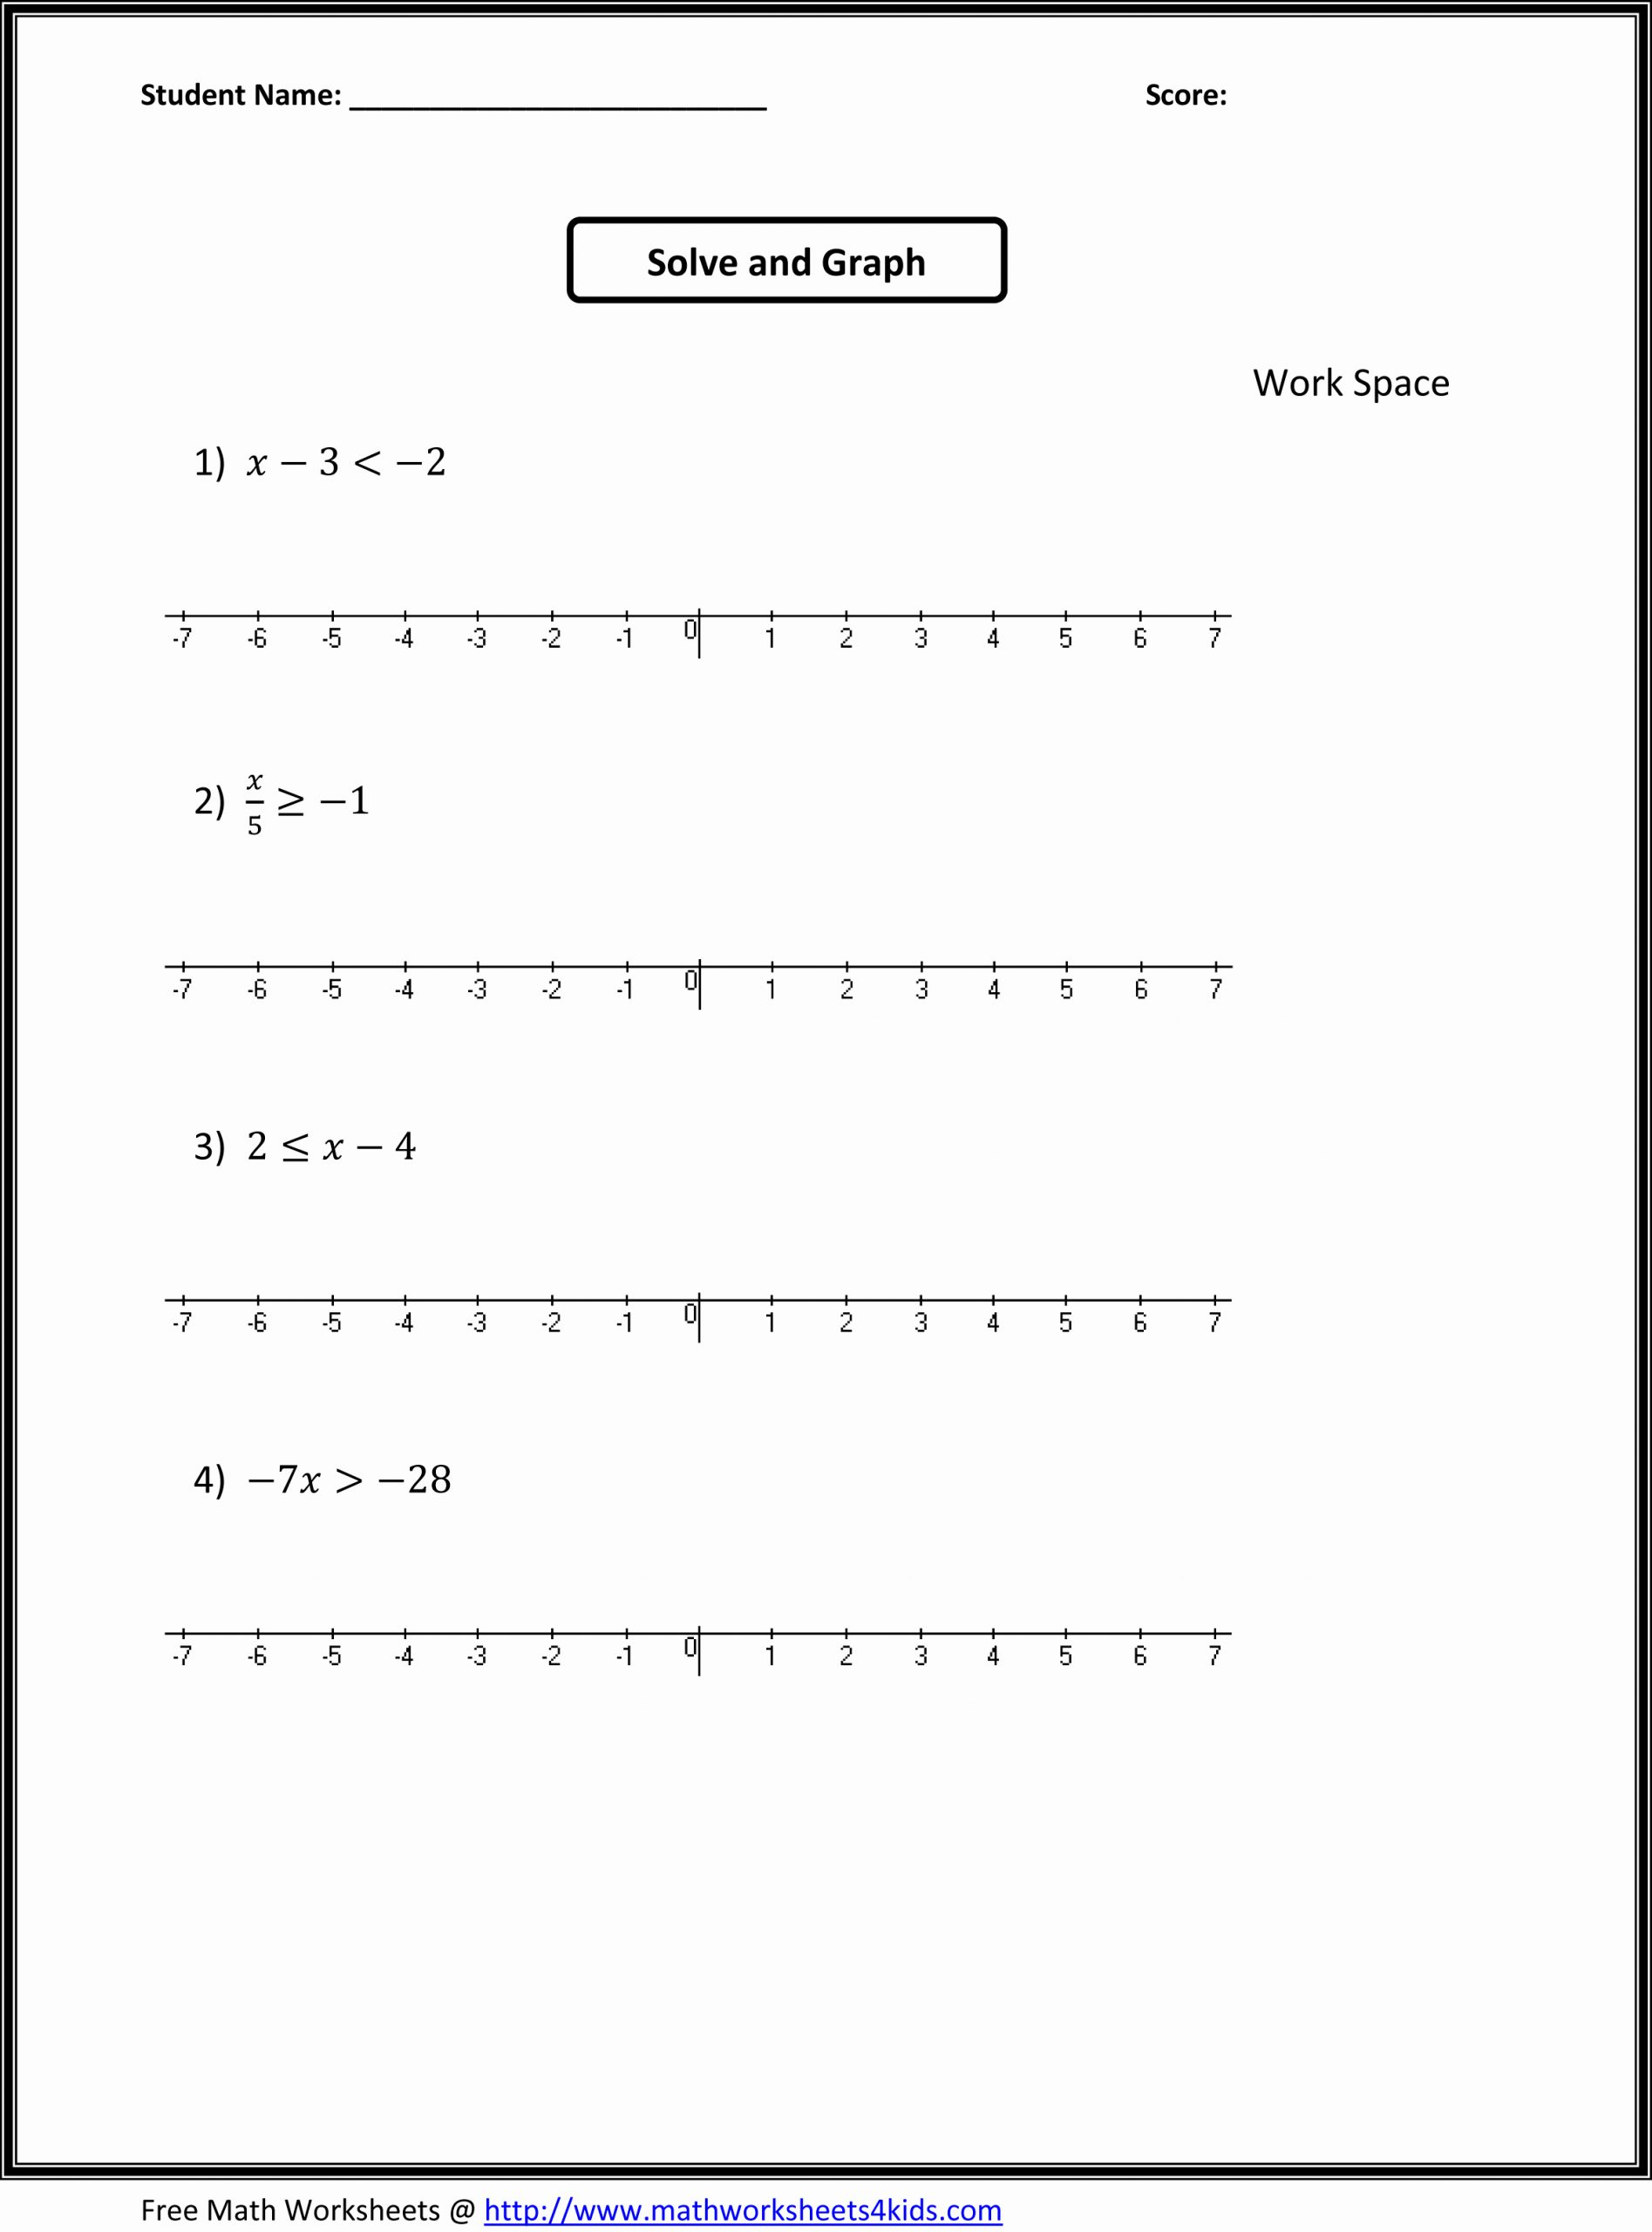 Math Coloring Worksheets 7th Grade Awesome Download 7th Grade Math Worksheets